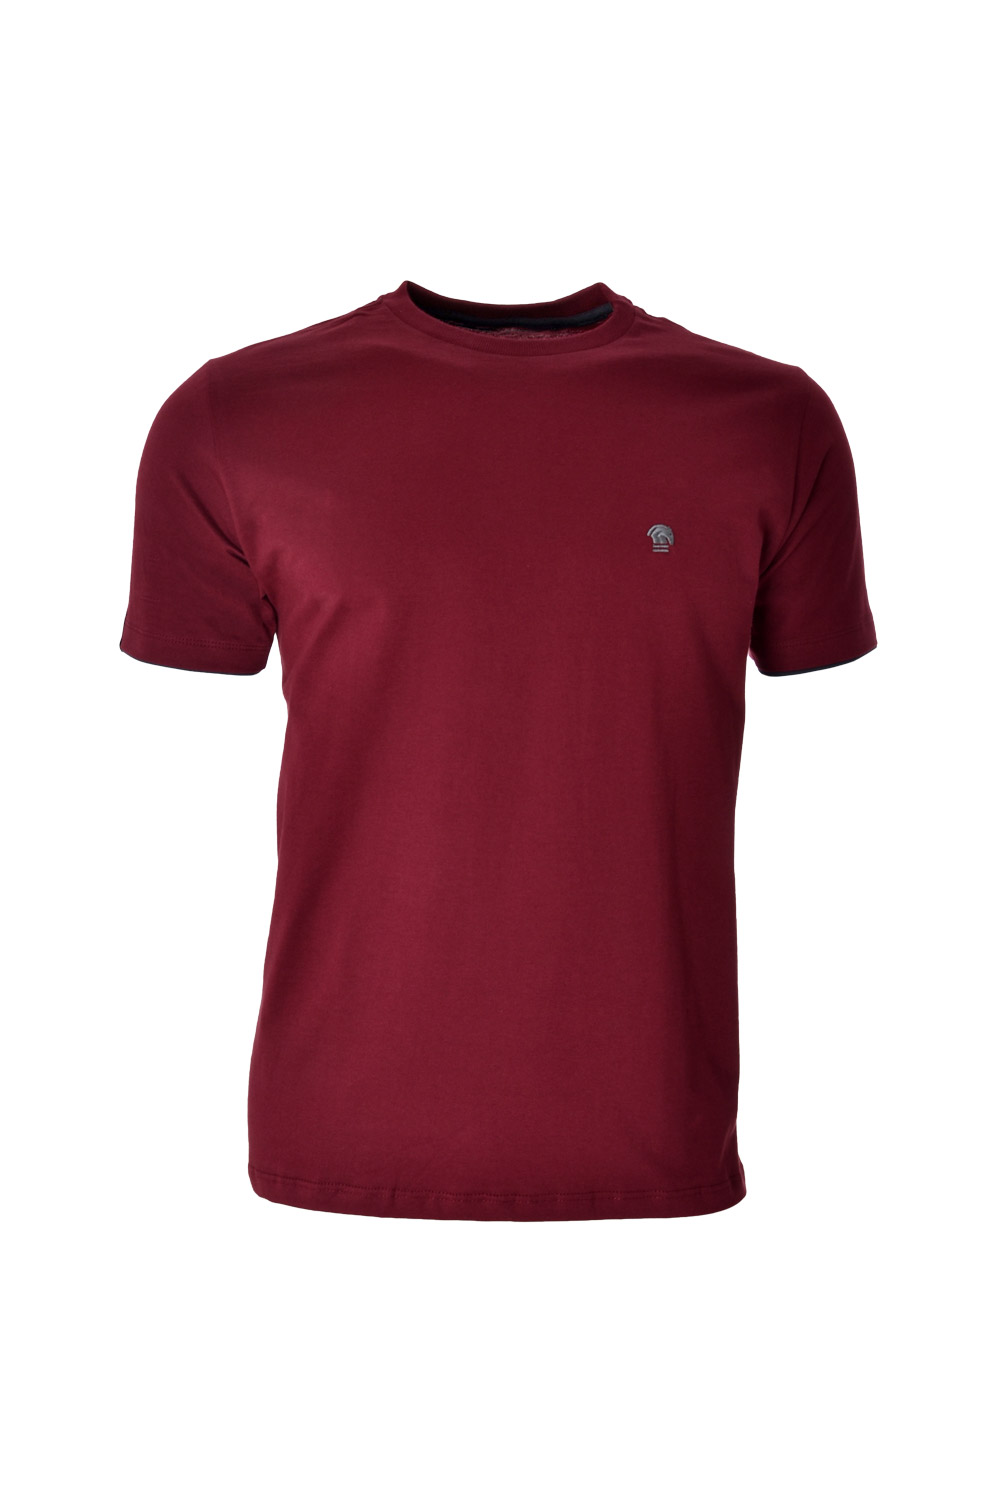 CAMISETA MC BLUES SUPER SLIM ALGODAO GOLA C LISO BORDO